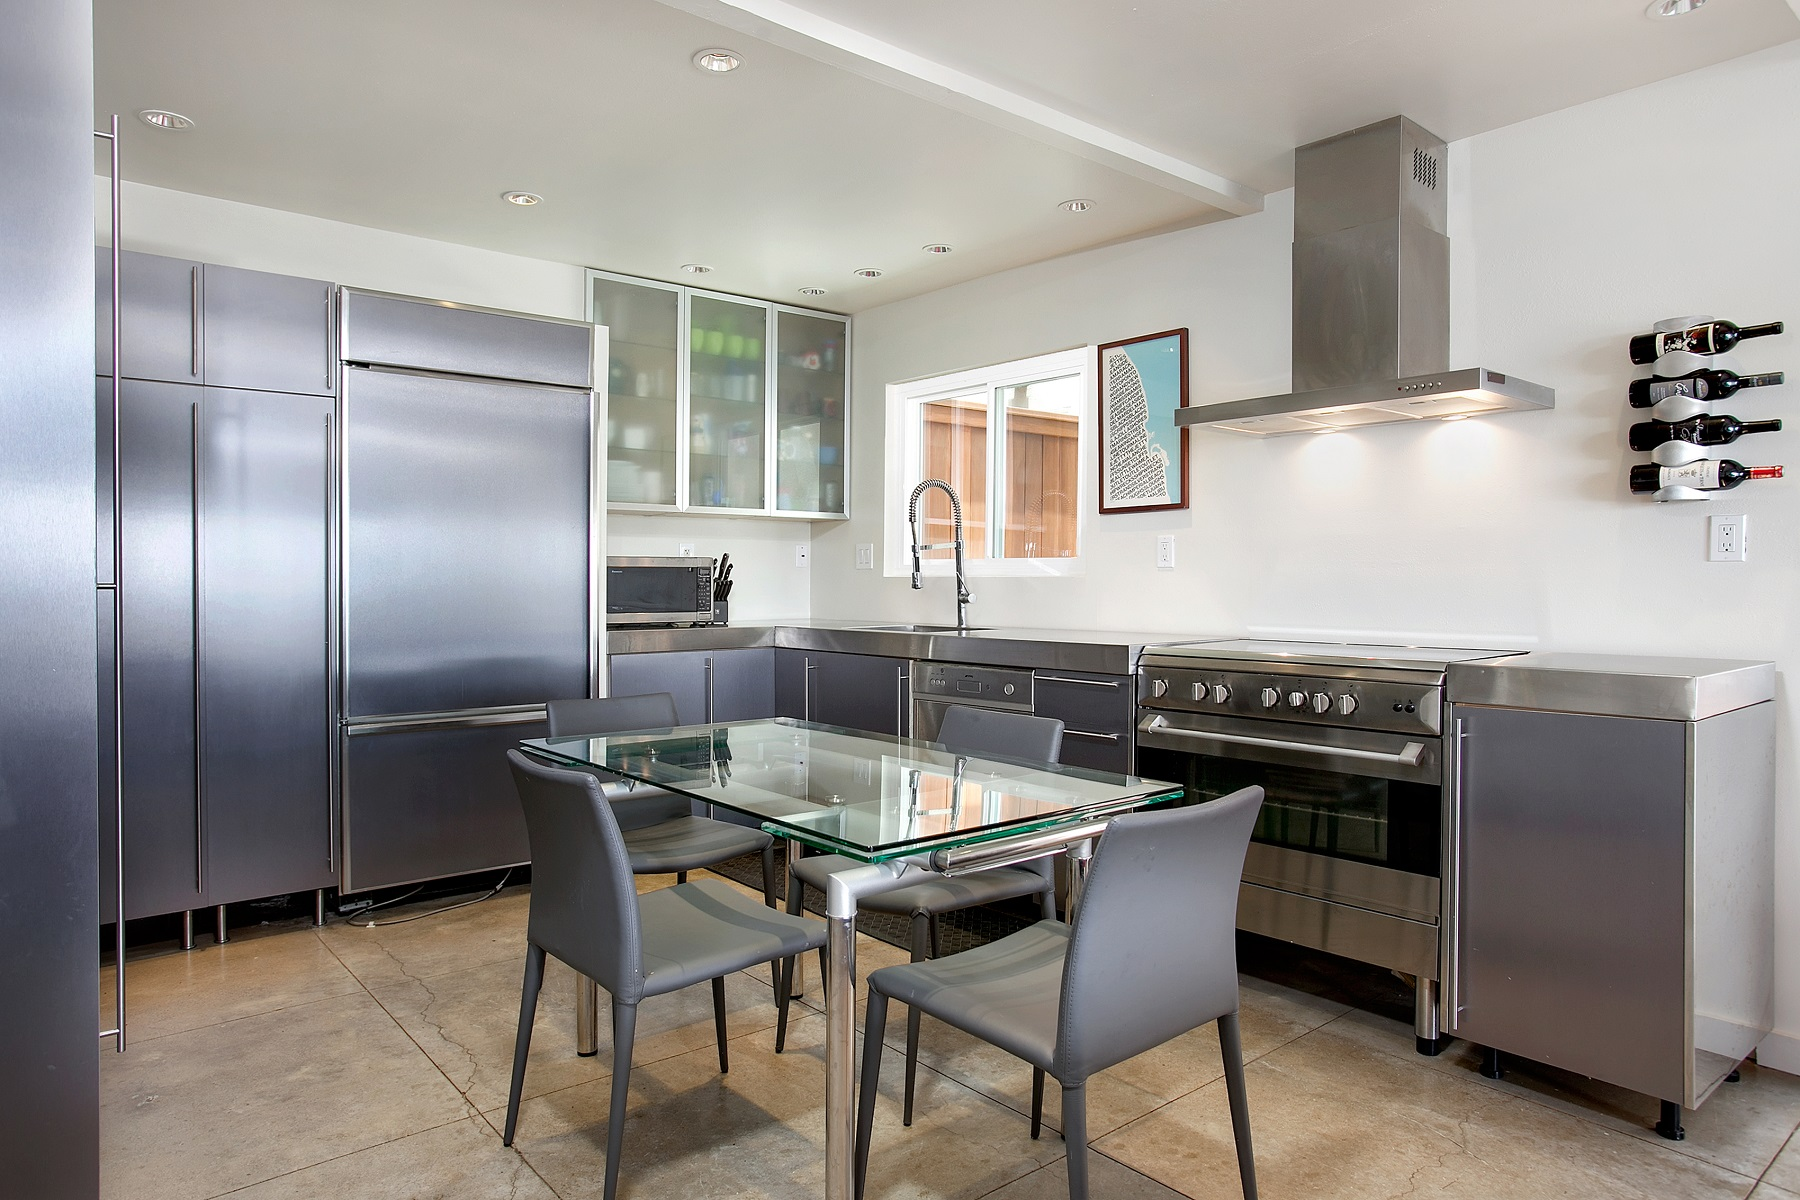 Single Family Home for Sale at 1237 Archer Street San Diego, California 92109 United States